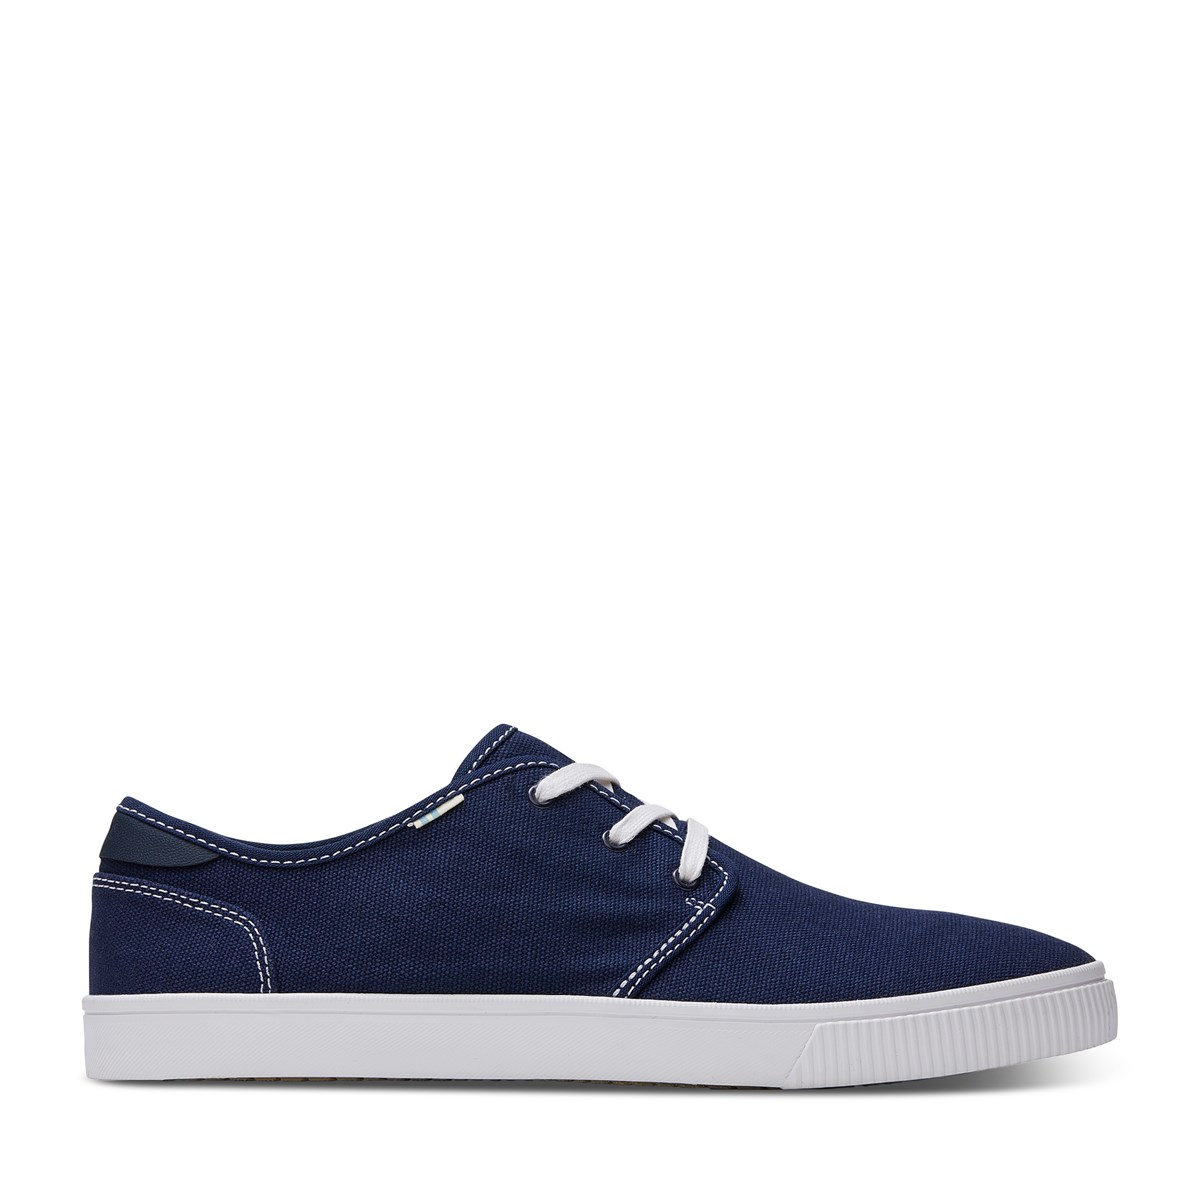 Men's Carlo Shoes in Navy Blue